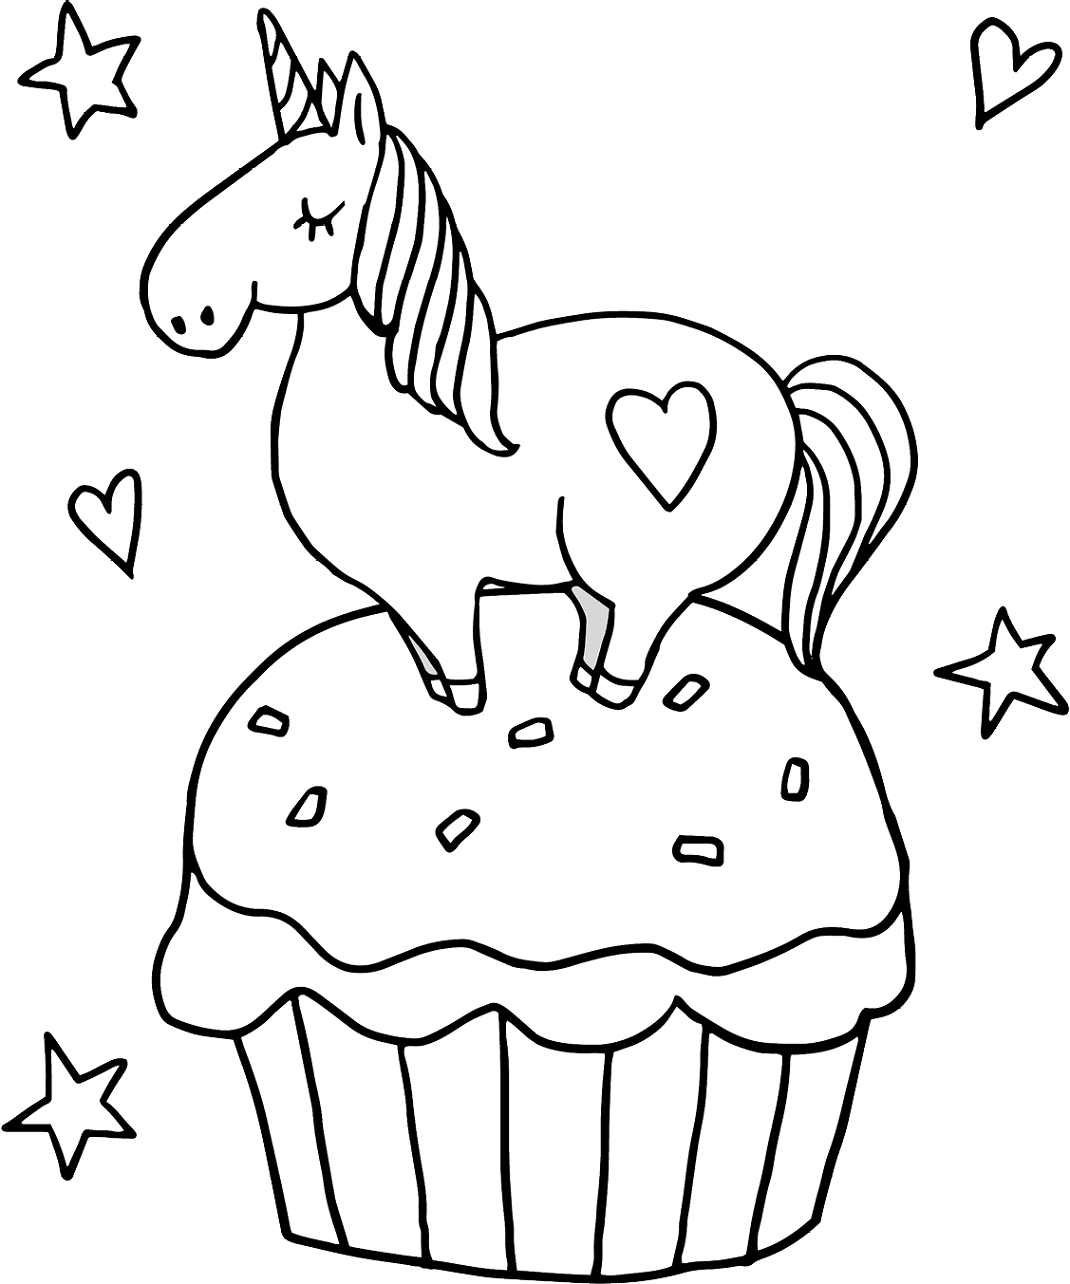 unicorn cupcakes coloring pages little unicorn on cupcake coloring page free printable coloring cupcakes pages unicorn